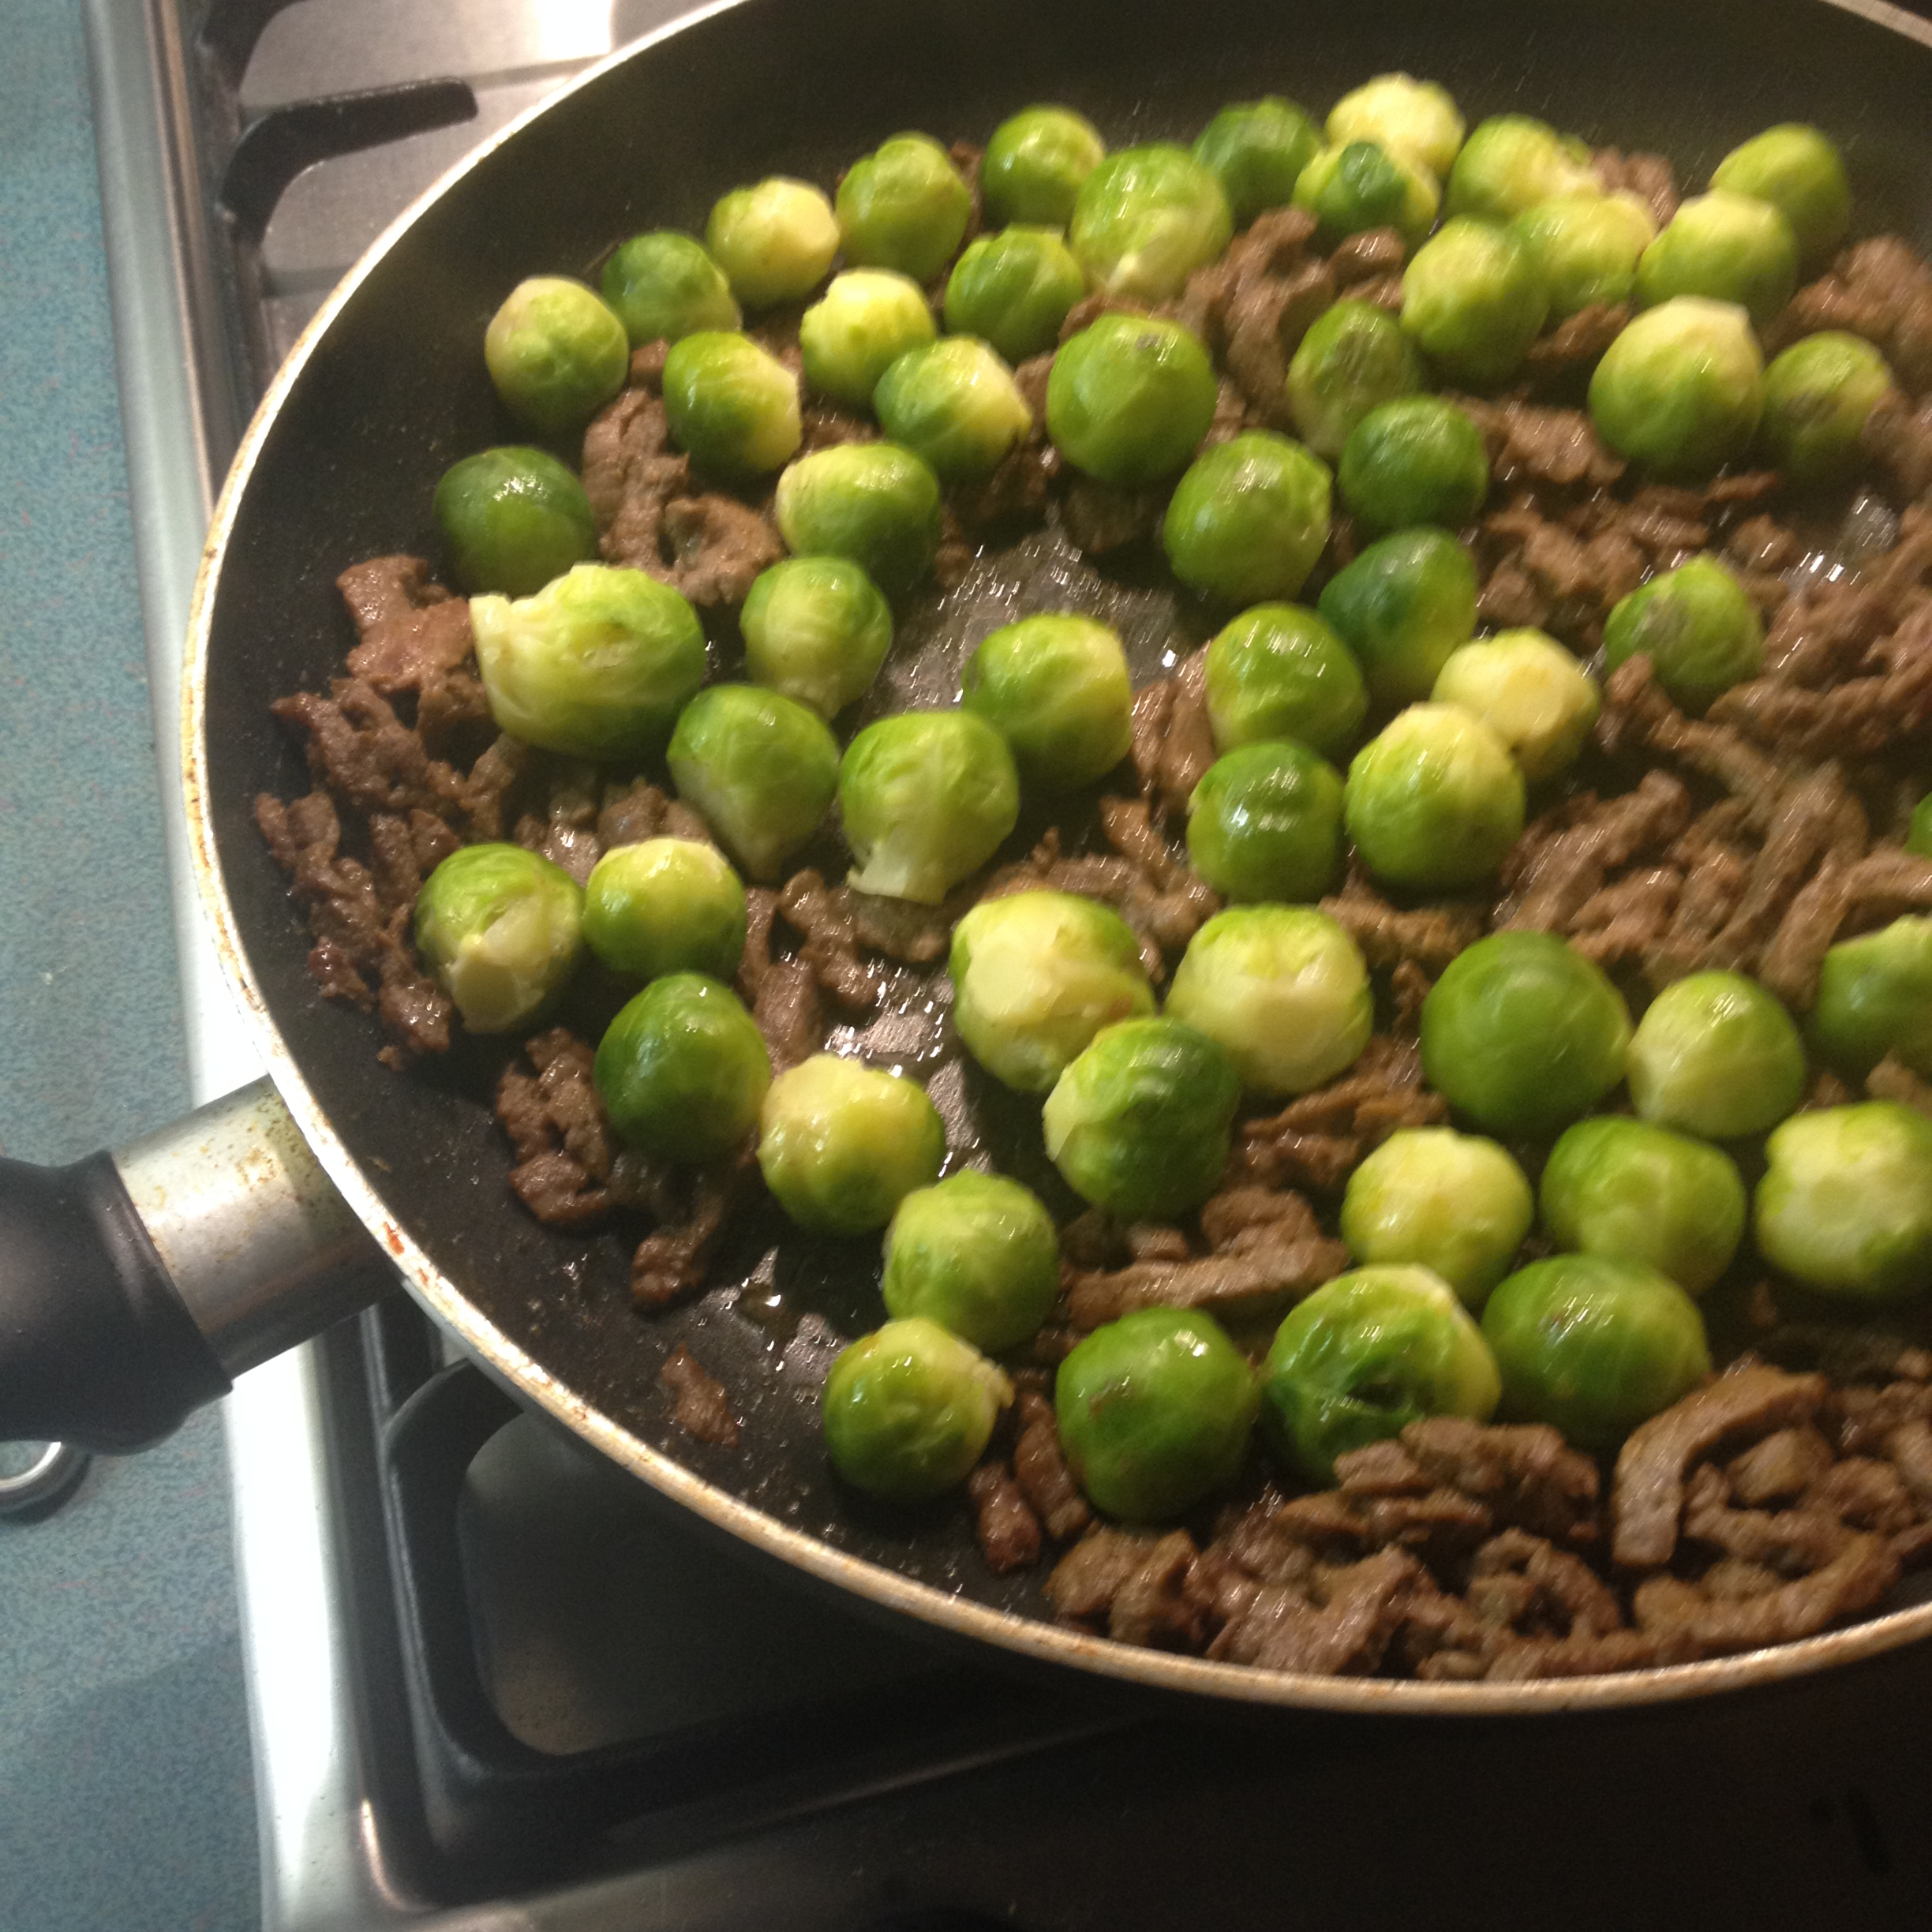 Brussels Sprouts with Refosco Sfriso